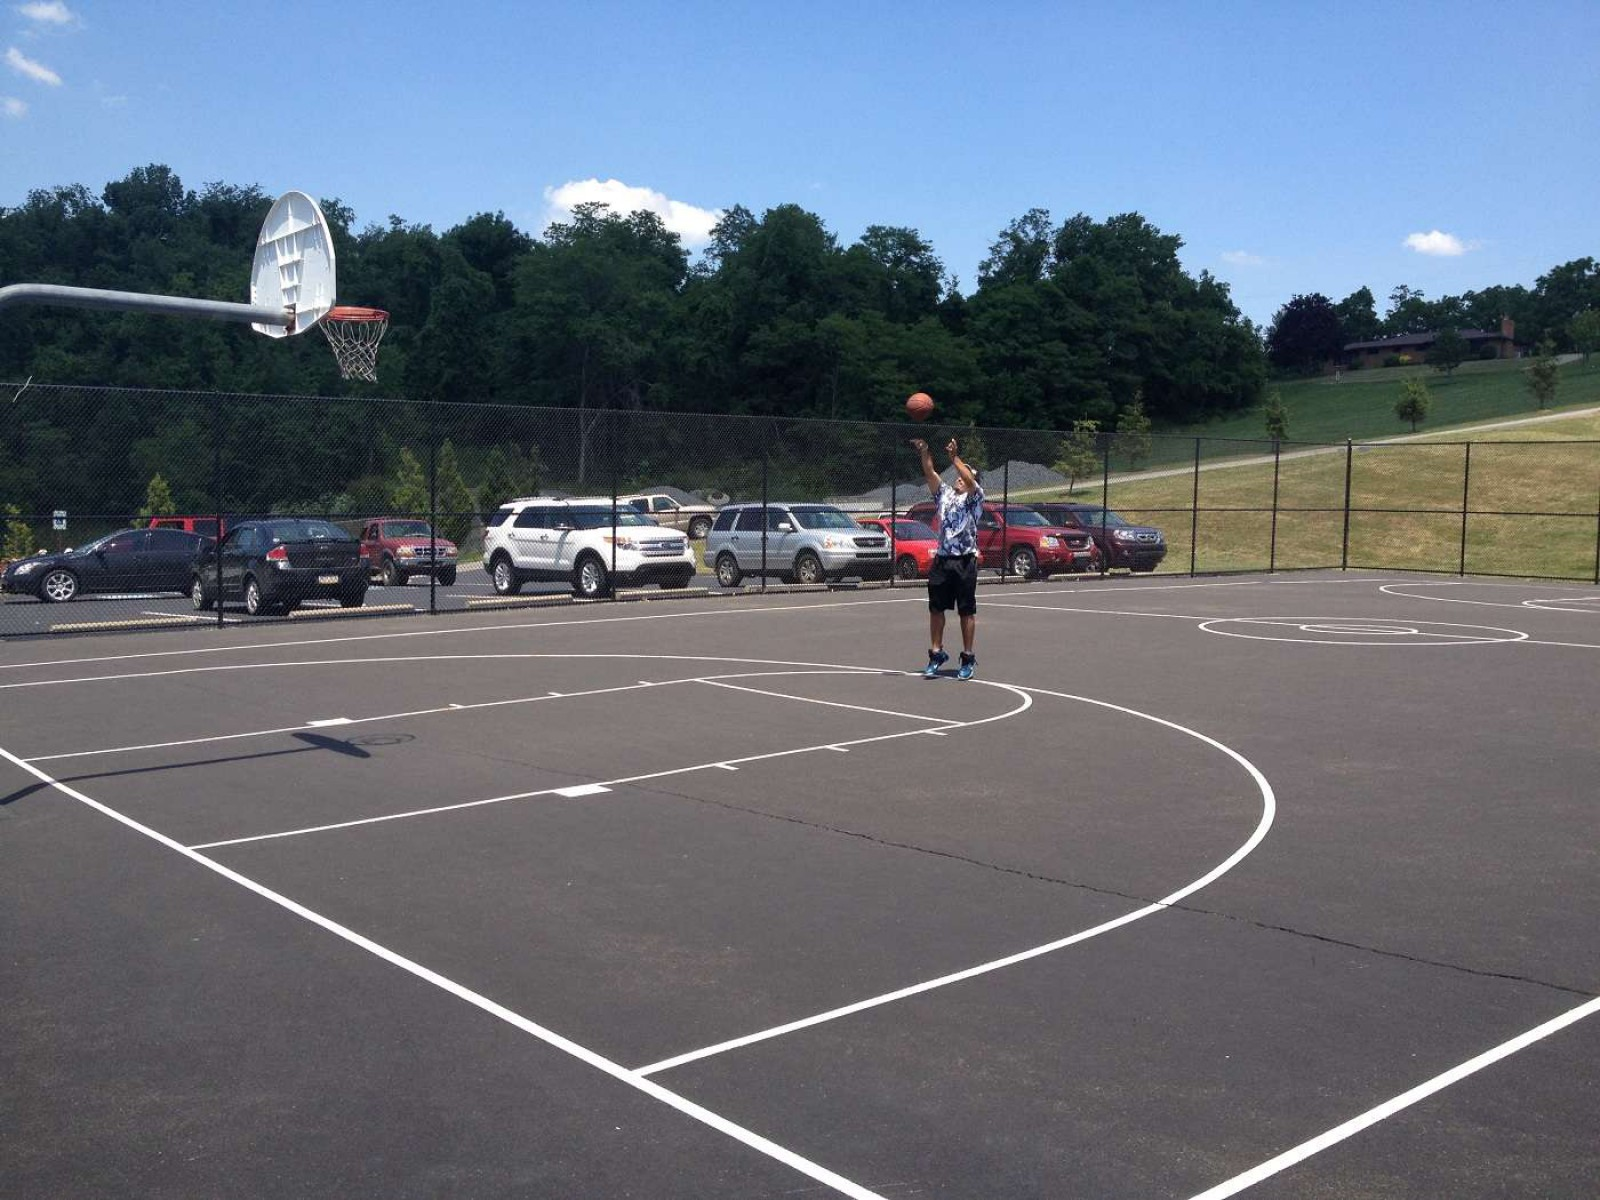 North Strabane Basketball Courts, Canonsburg, PA, United States